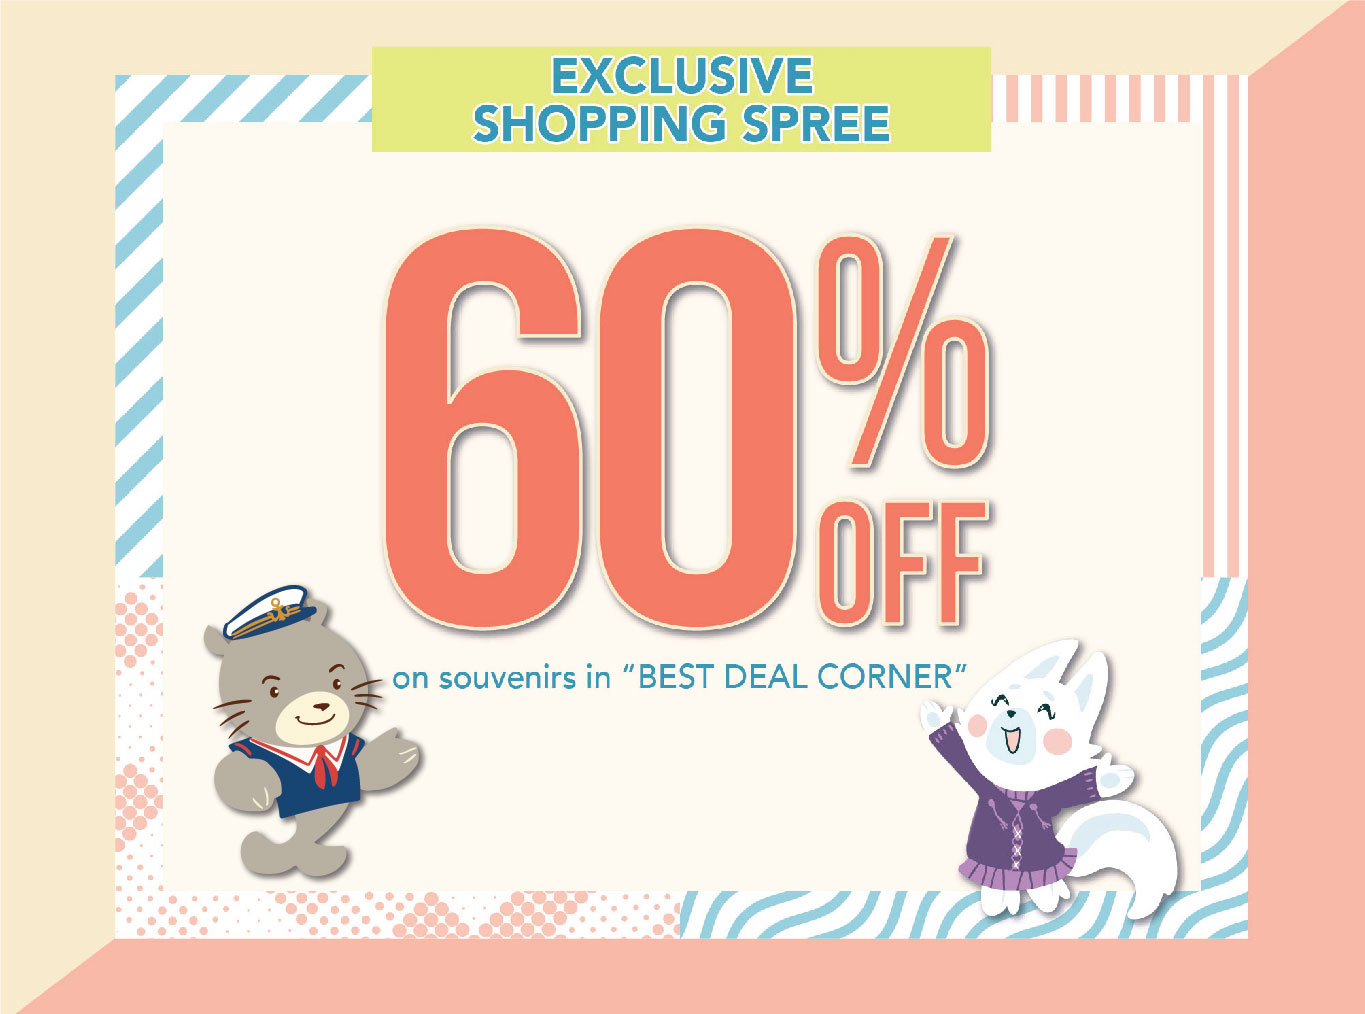 Exclusive Offer at the Best Deal Corner